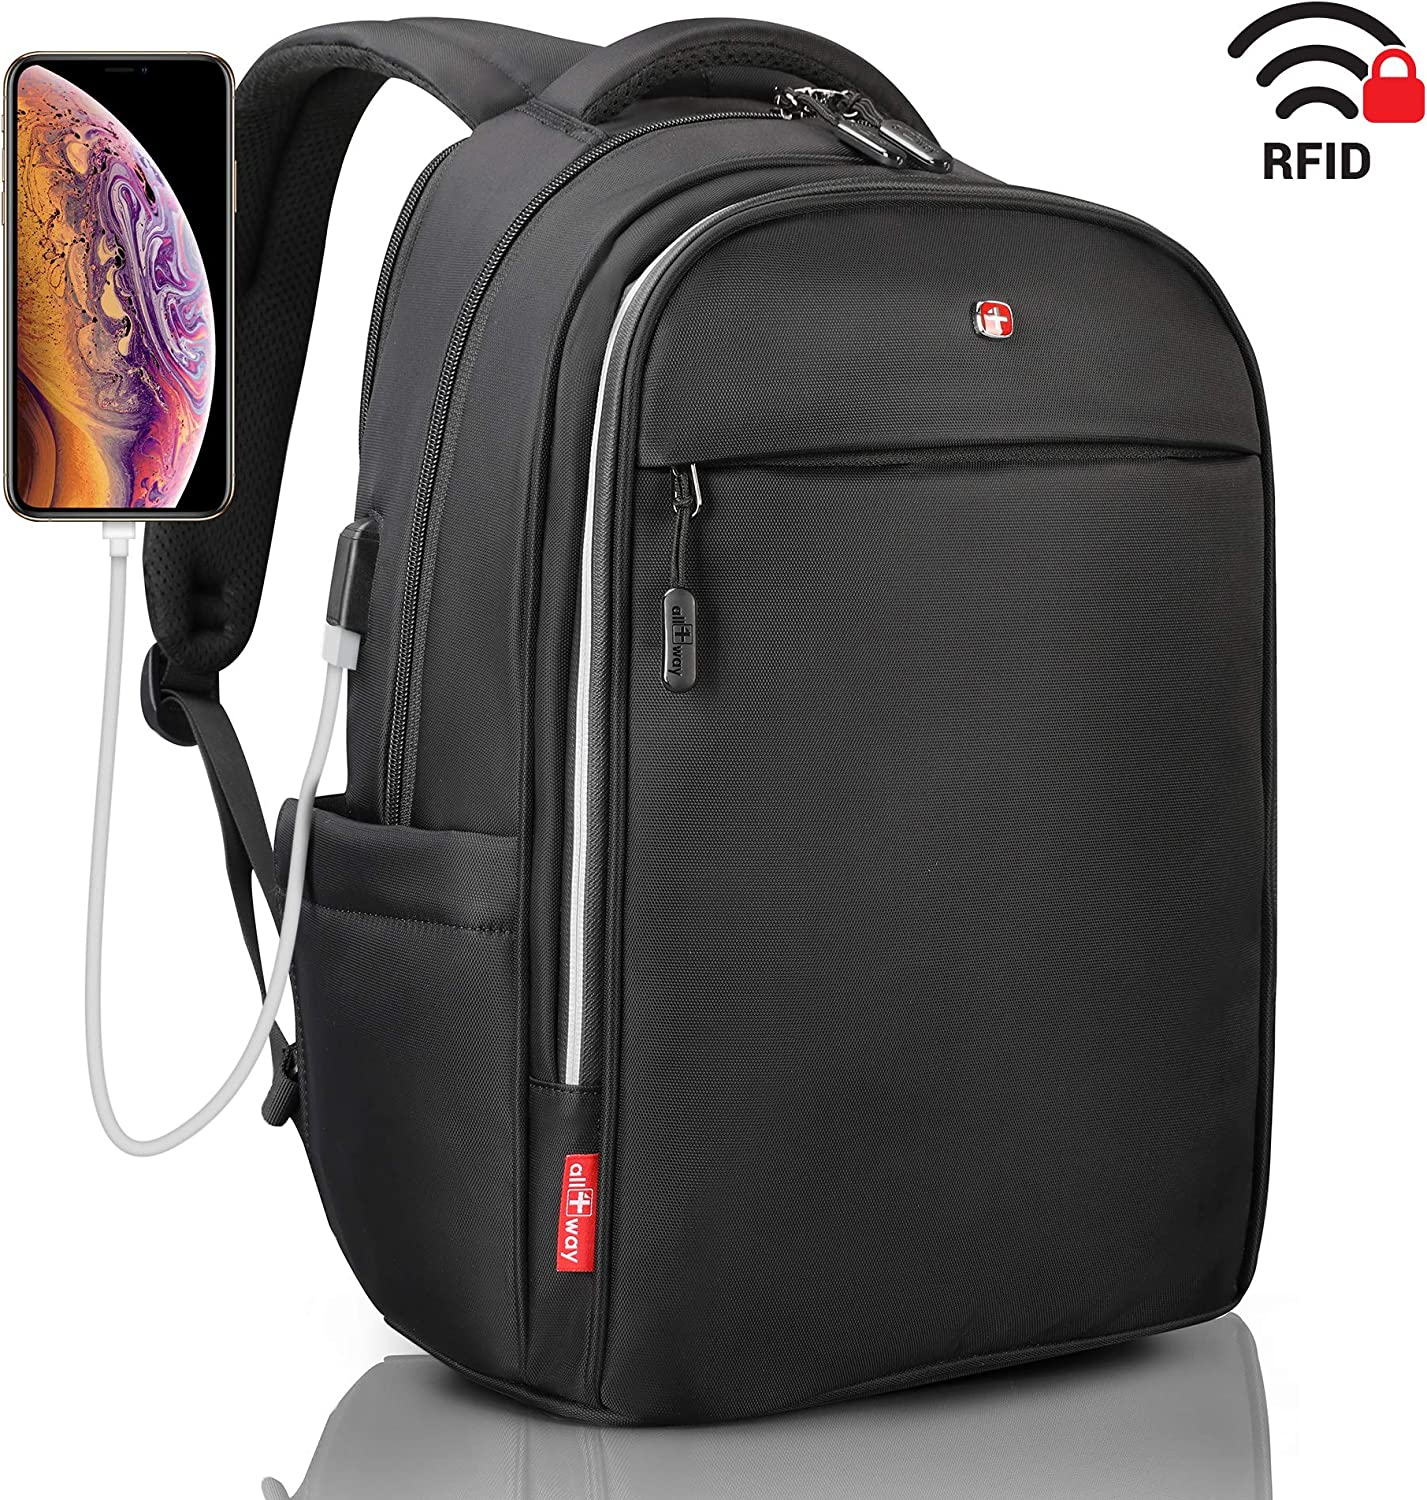 Laptop Backpack Anti Theft RFID – SWISS Design USB Charging Port – Business College Travel School Backpack – Backpack for Men Women 15 Black Waterproof with Rain Cover